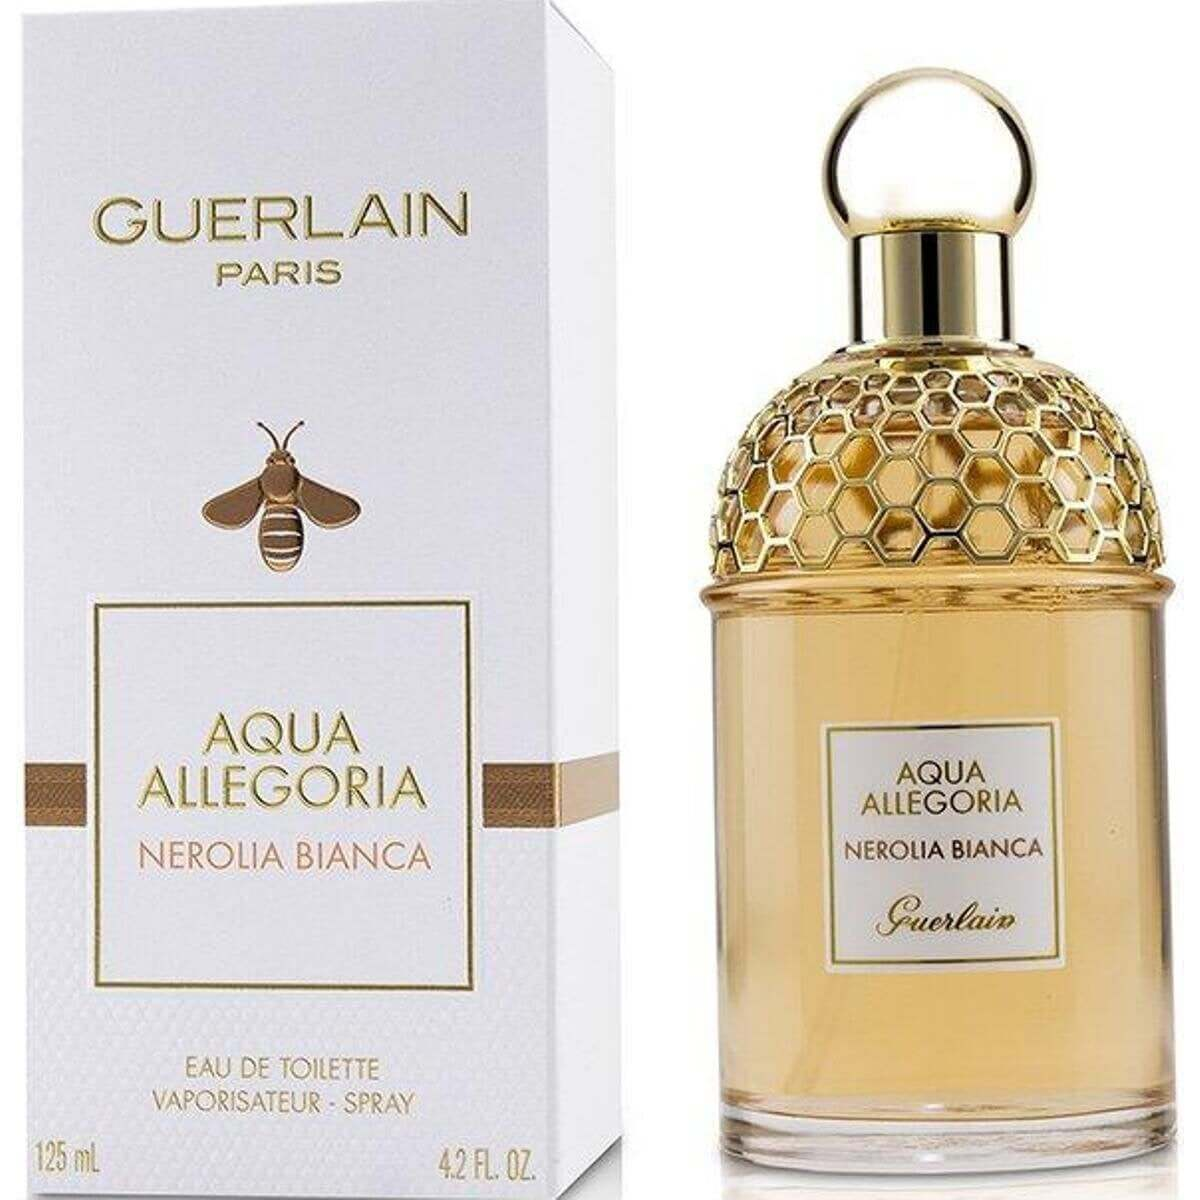 Aqua Allegoria Nerolia Bianca by Guerlain for her EDT 4.2 oz New in Box